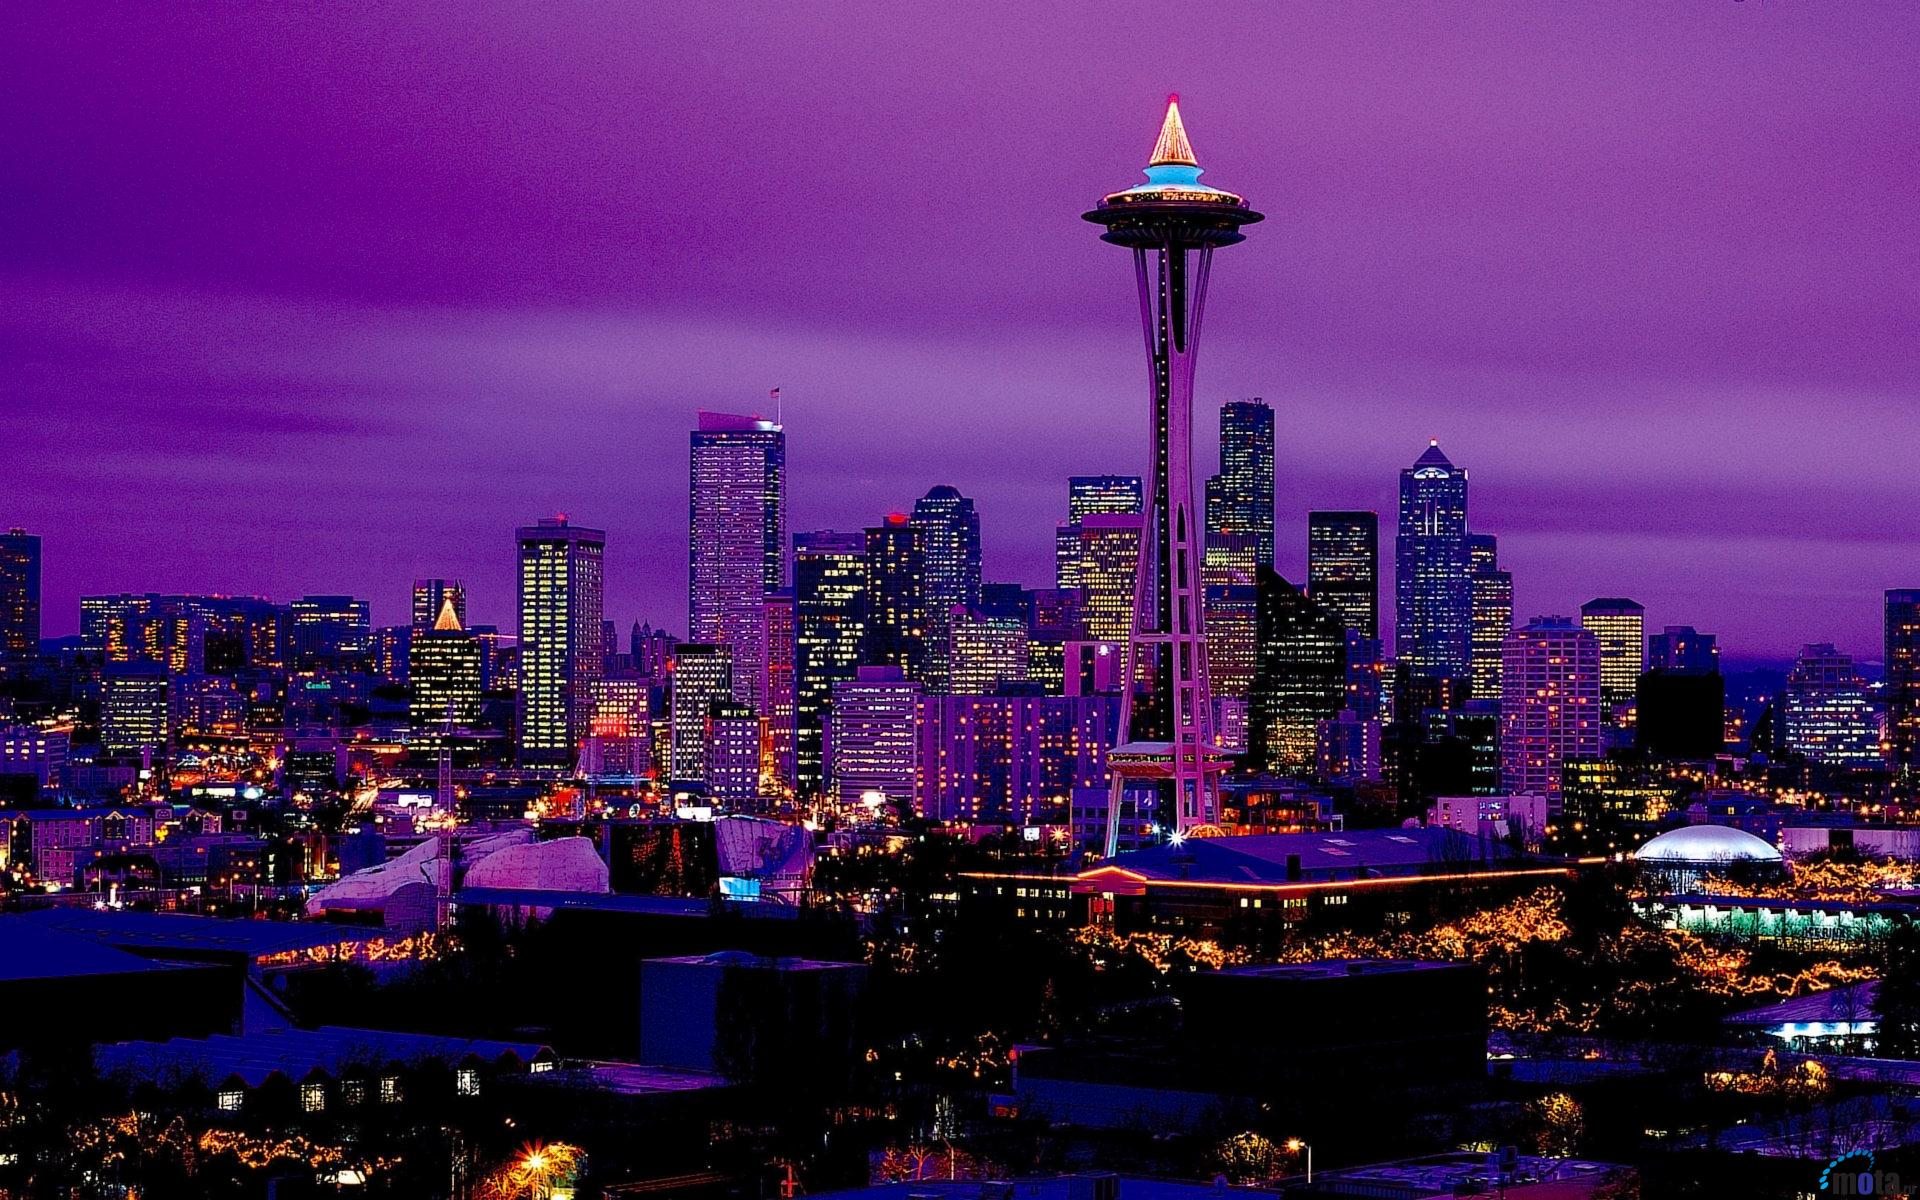 Download Wallpaper Seattle by night Washington USA 1920 x 1200 1920x1200